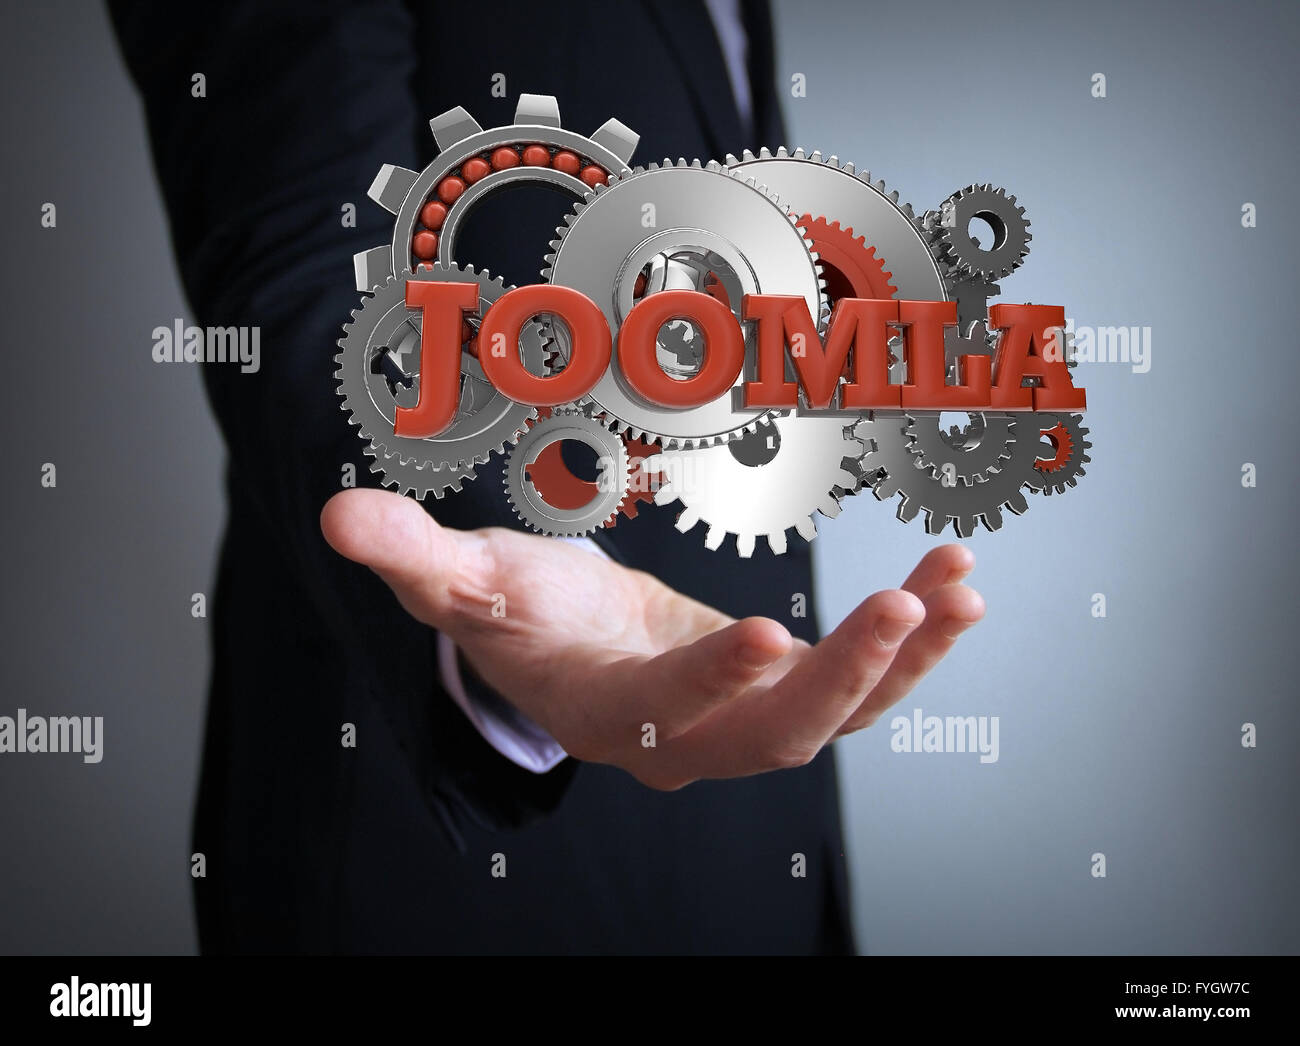 joomla coding businessman - Stock Image